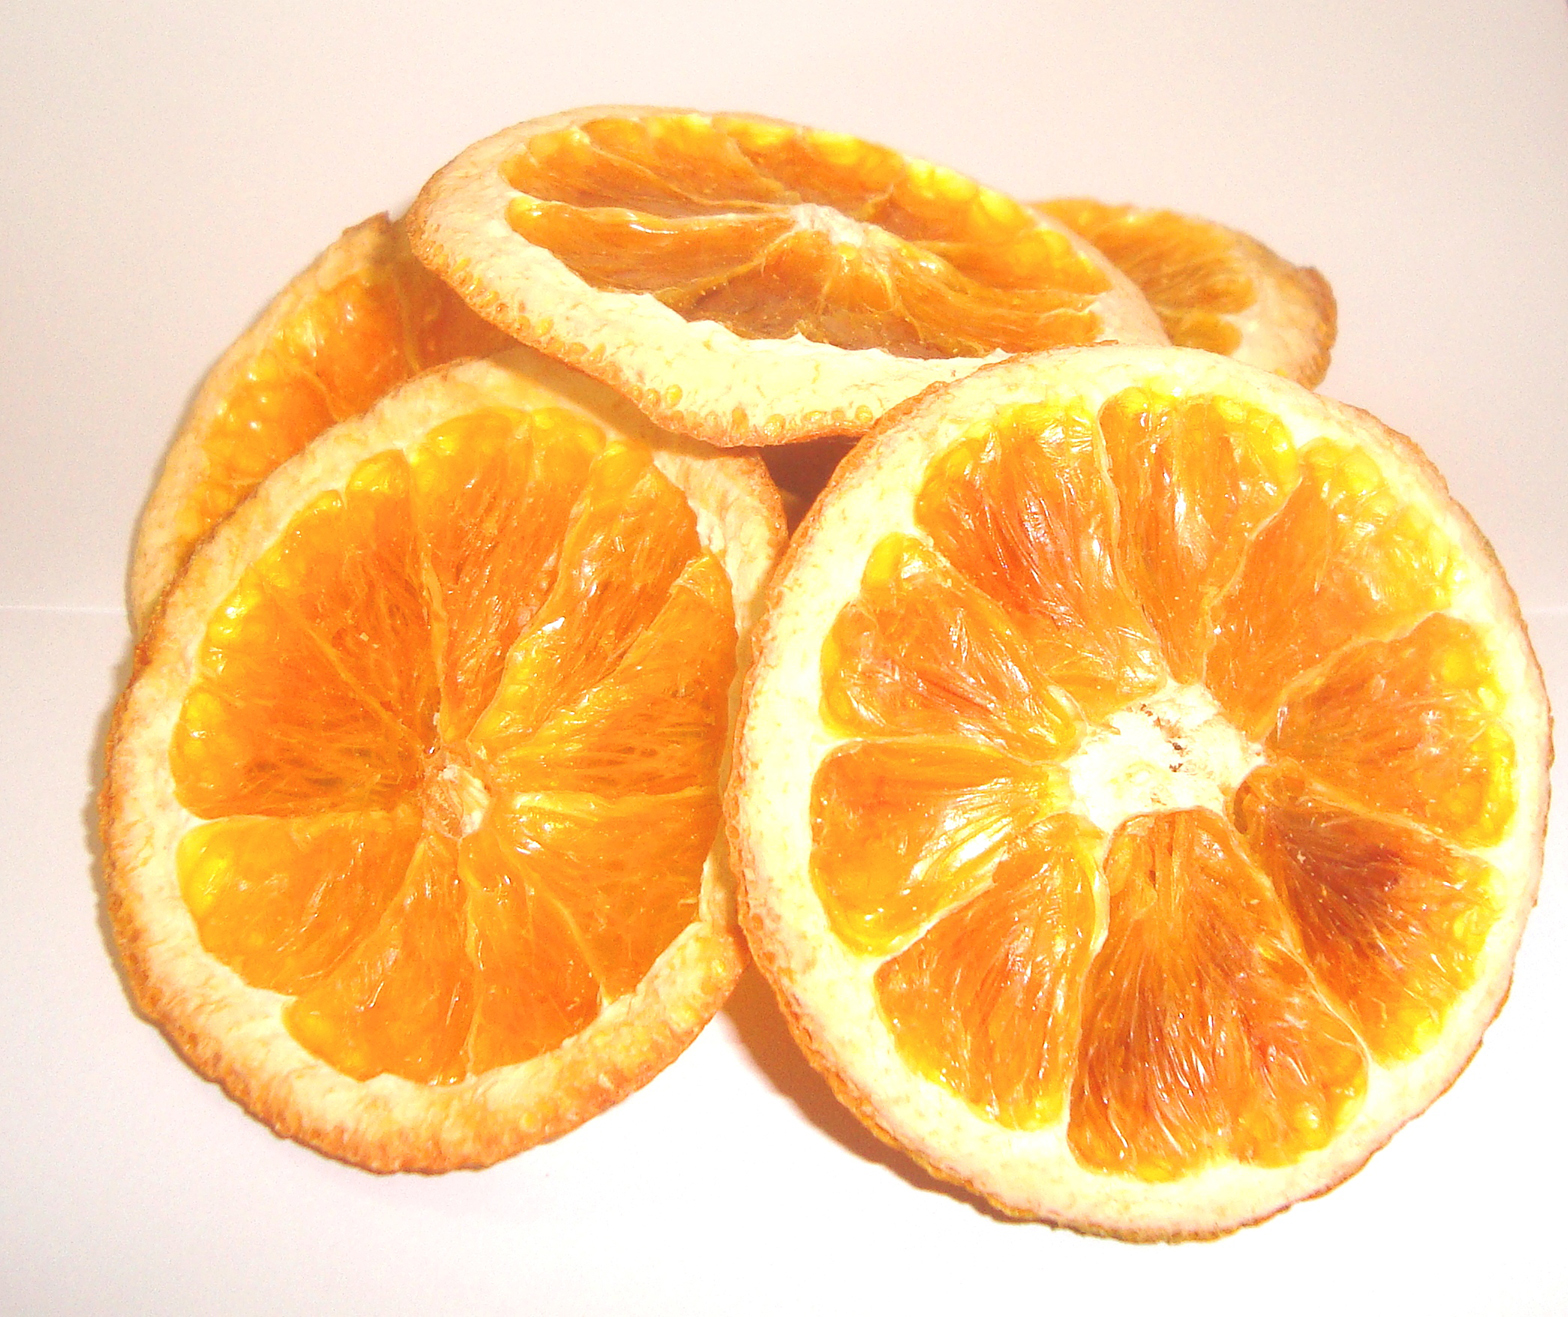 100 dried australian orange slices only gin gin dry